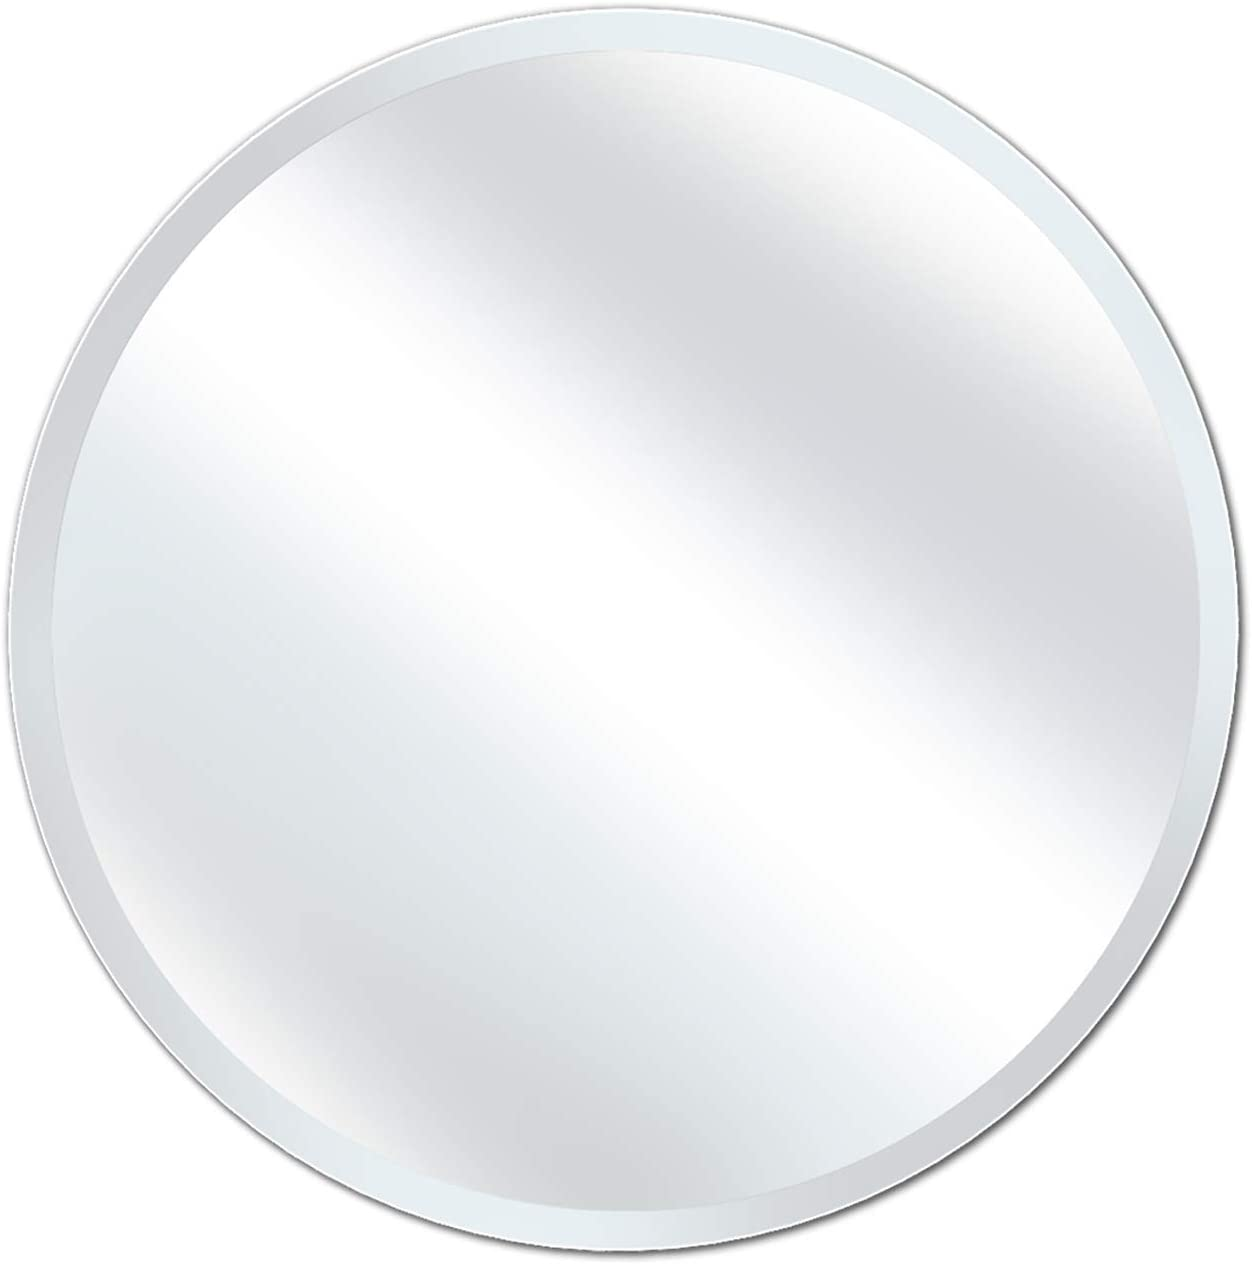 X Home 36 Inch Round Mirror, Large Beveled Frameless Wall Mirror for Bathroom, Vanity, Bedroom, Living Room, Dresser and Decor, Modern Style